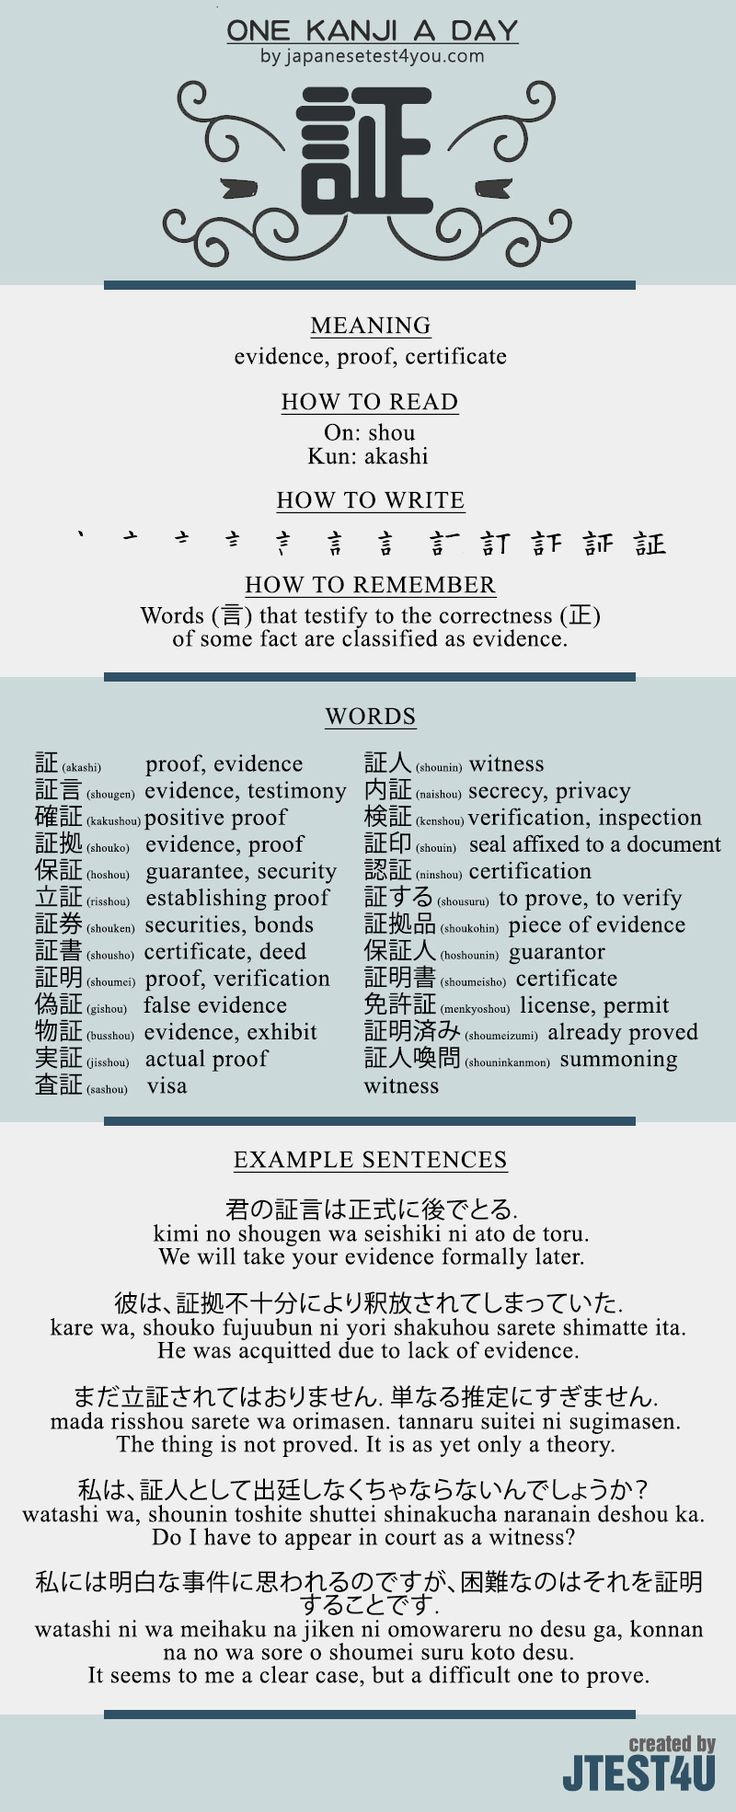 Learn one Kanji a day with infographic - 証 (shou): http://japanesetest4you.com/learn-one-kanji-a-day-with-infographic-%e8%a8%bc-shou/